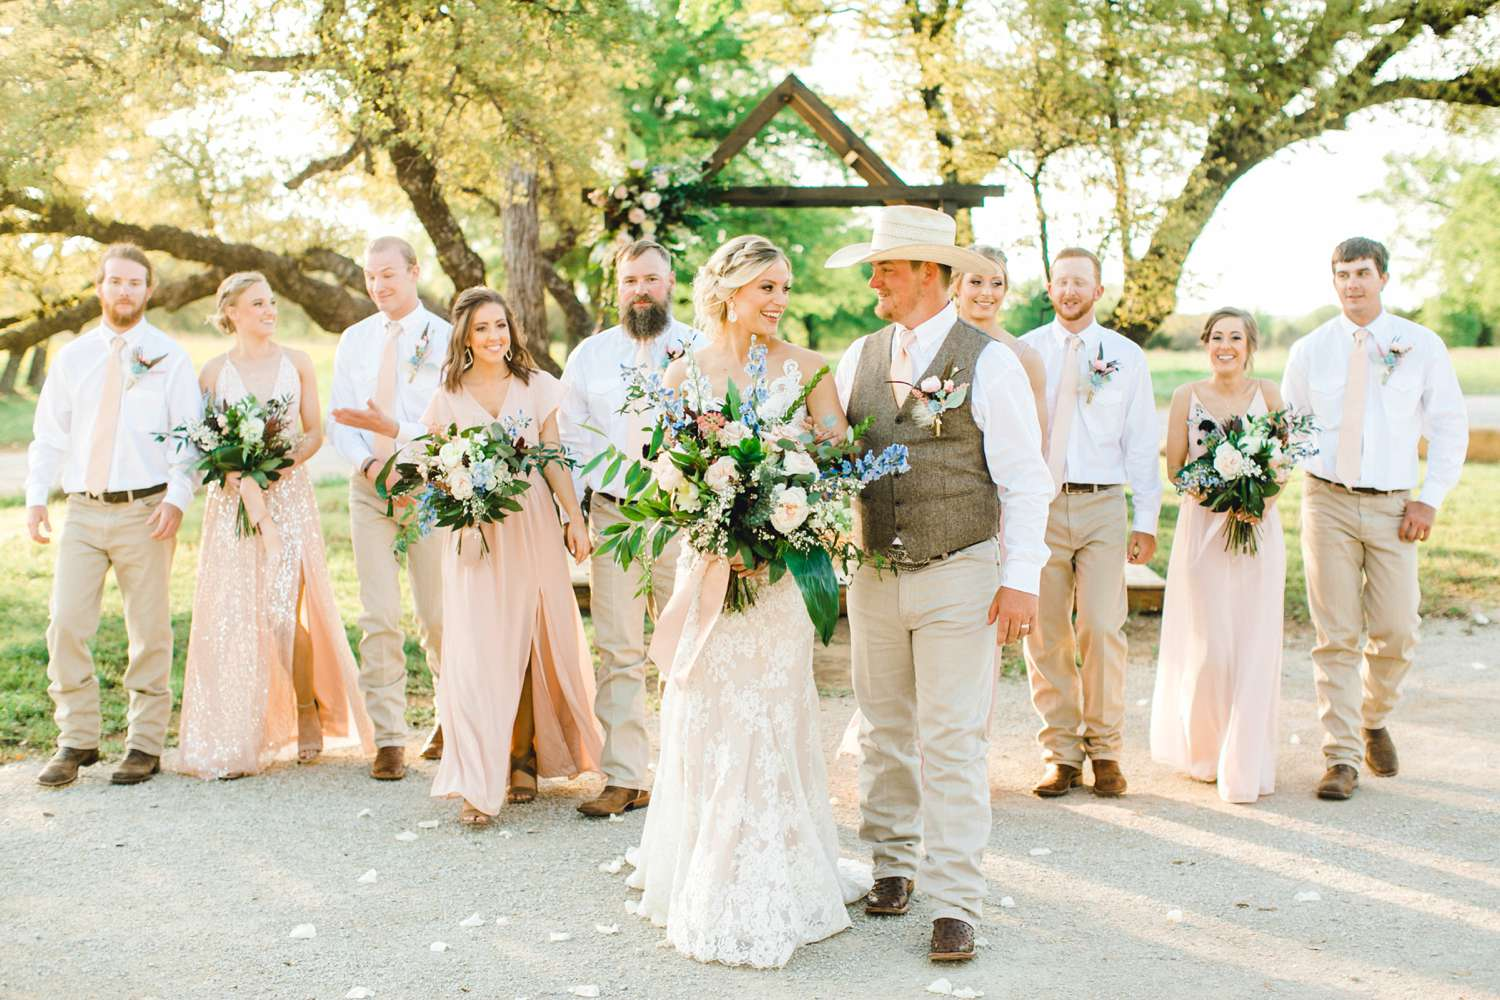 SARAH+TREVOR+BADGETT+SPARROW+CREEK+GRAHAM+TEXAS+ALLEEJ+WEDDINGS_0088.jpg